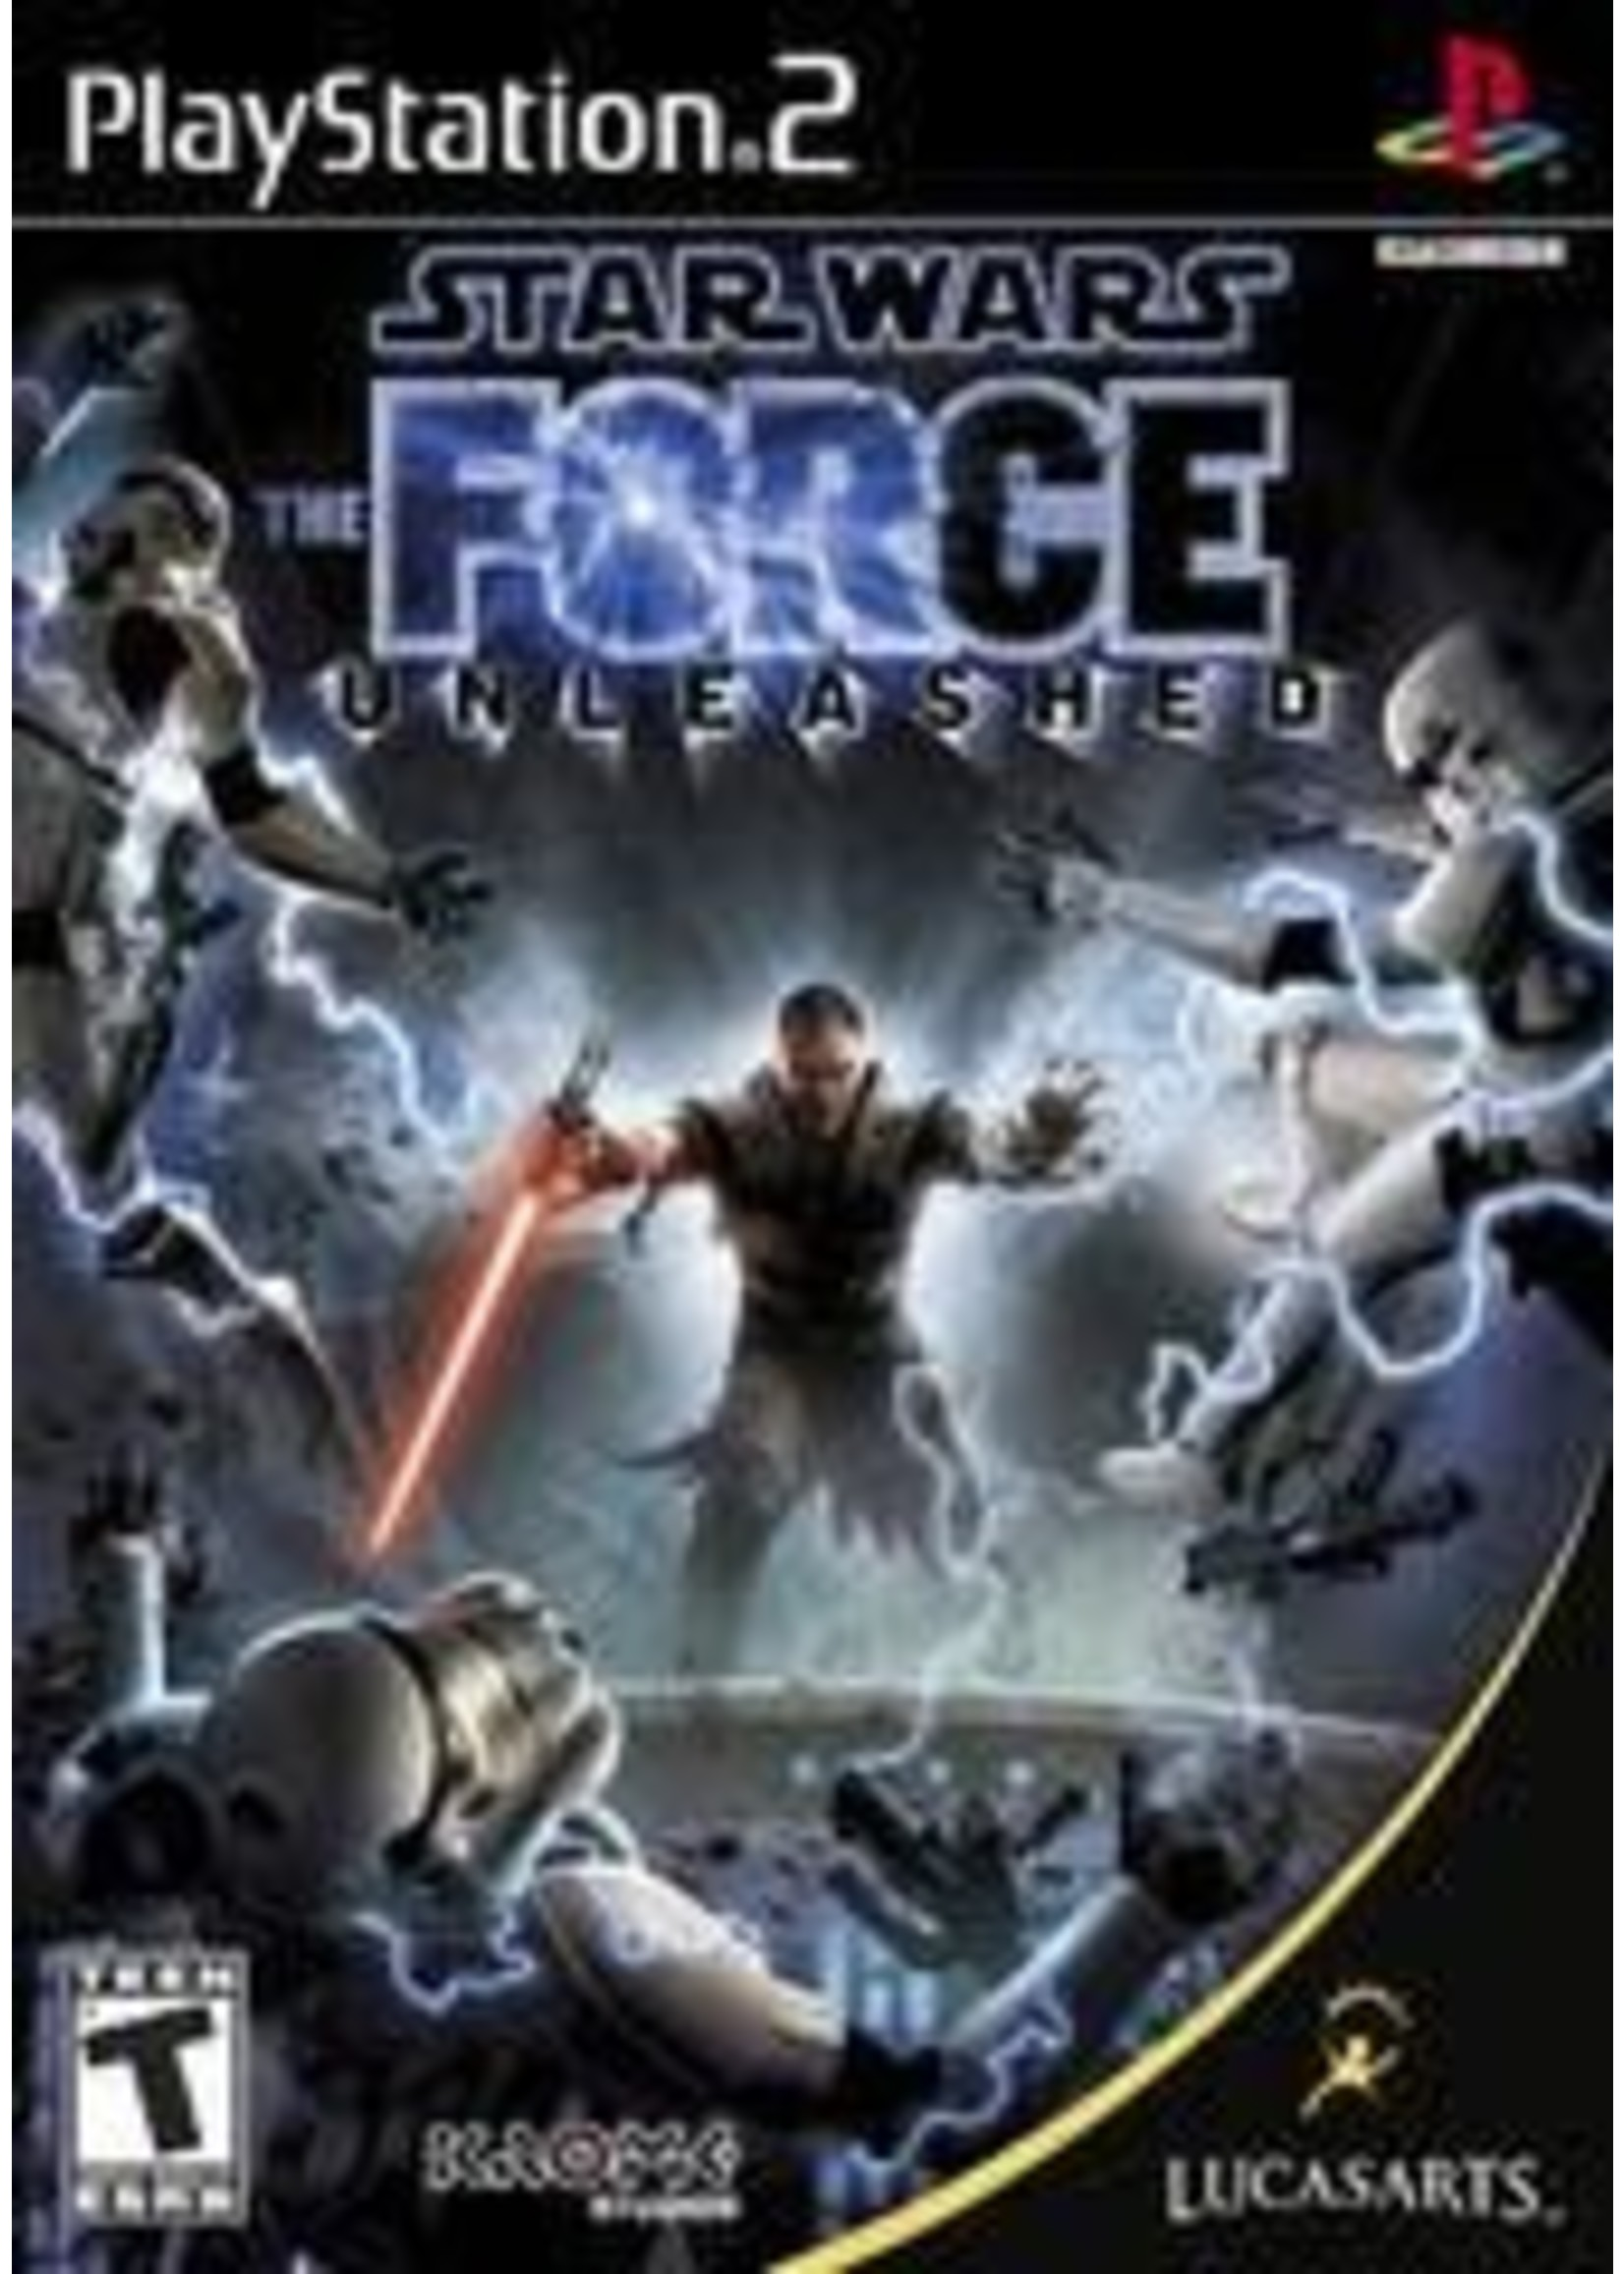 Star Wars The Force Unleashed Playstation 2